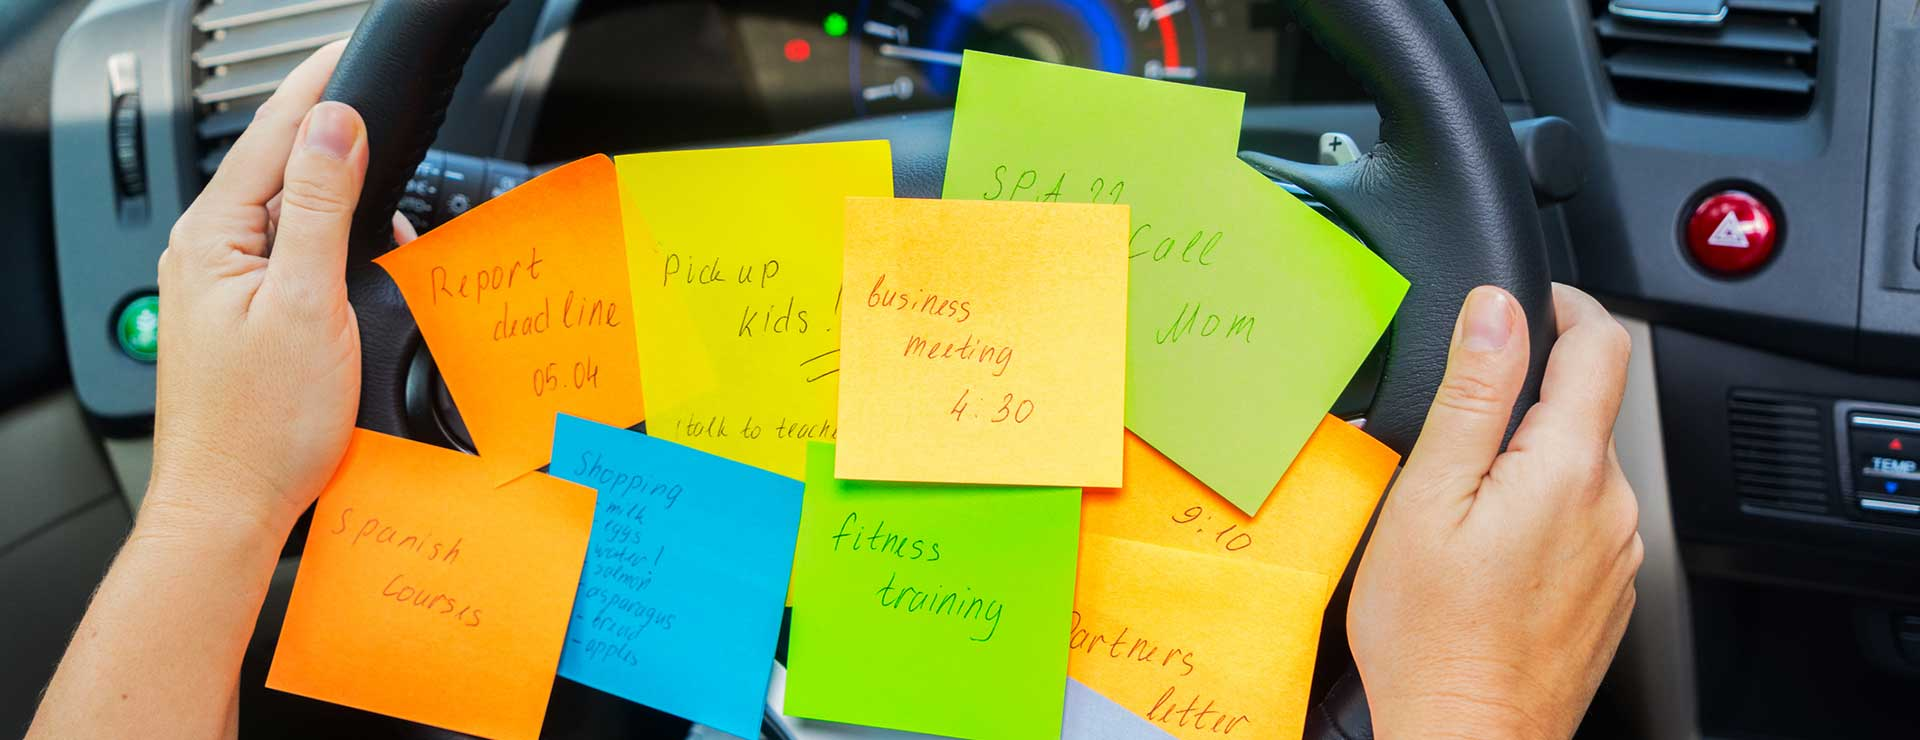 to-do list sticky notes attached to the steering wheel